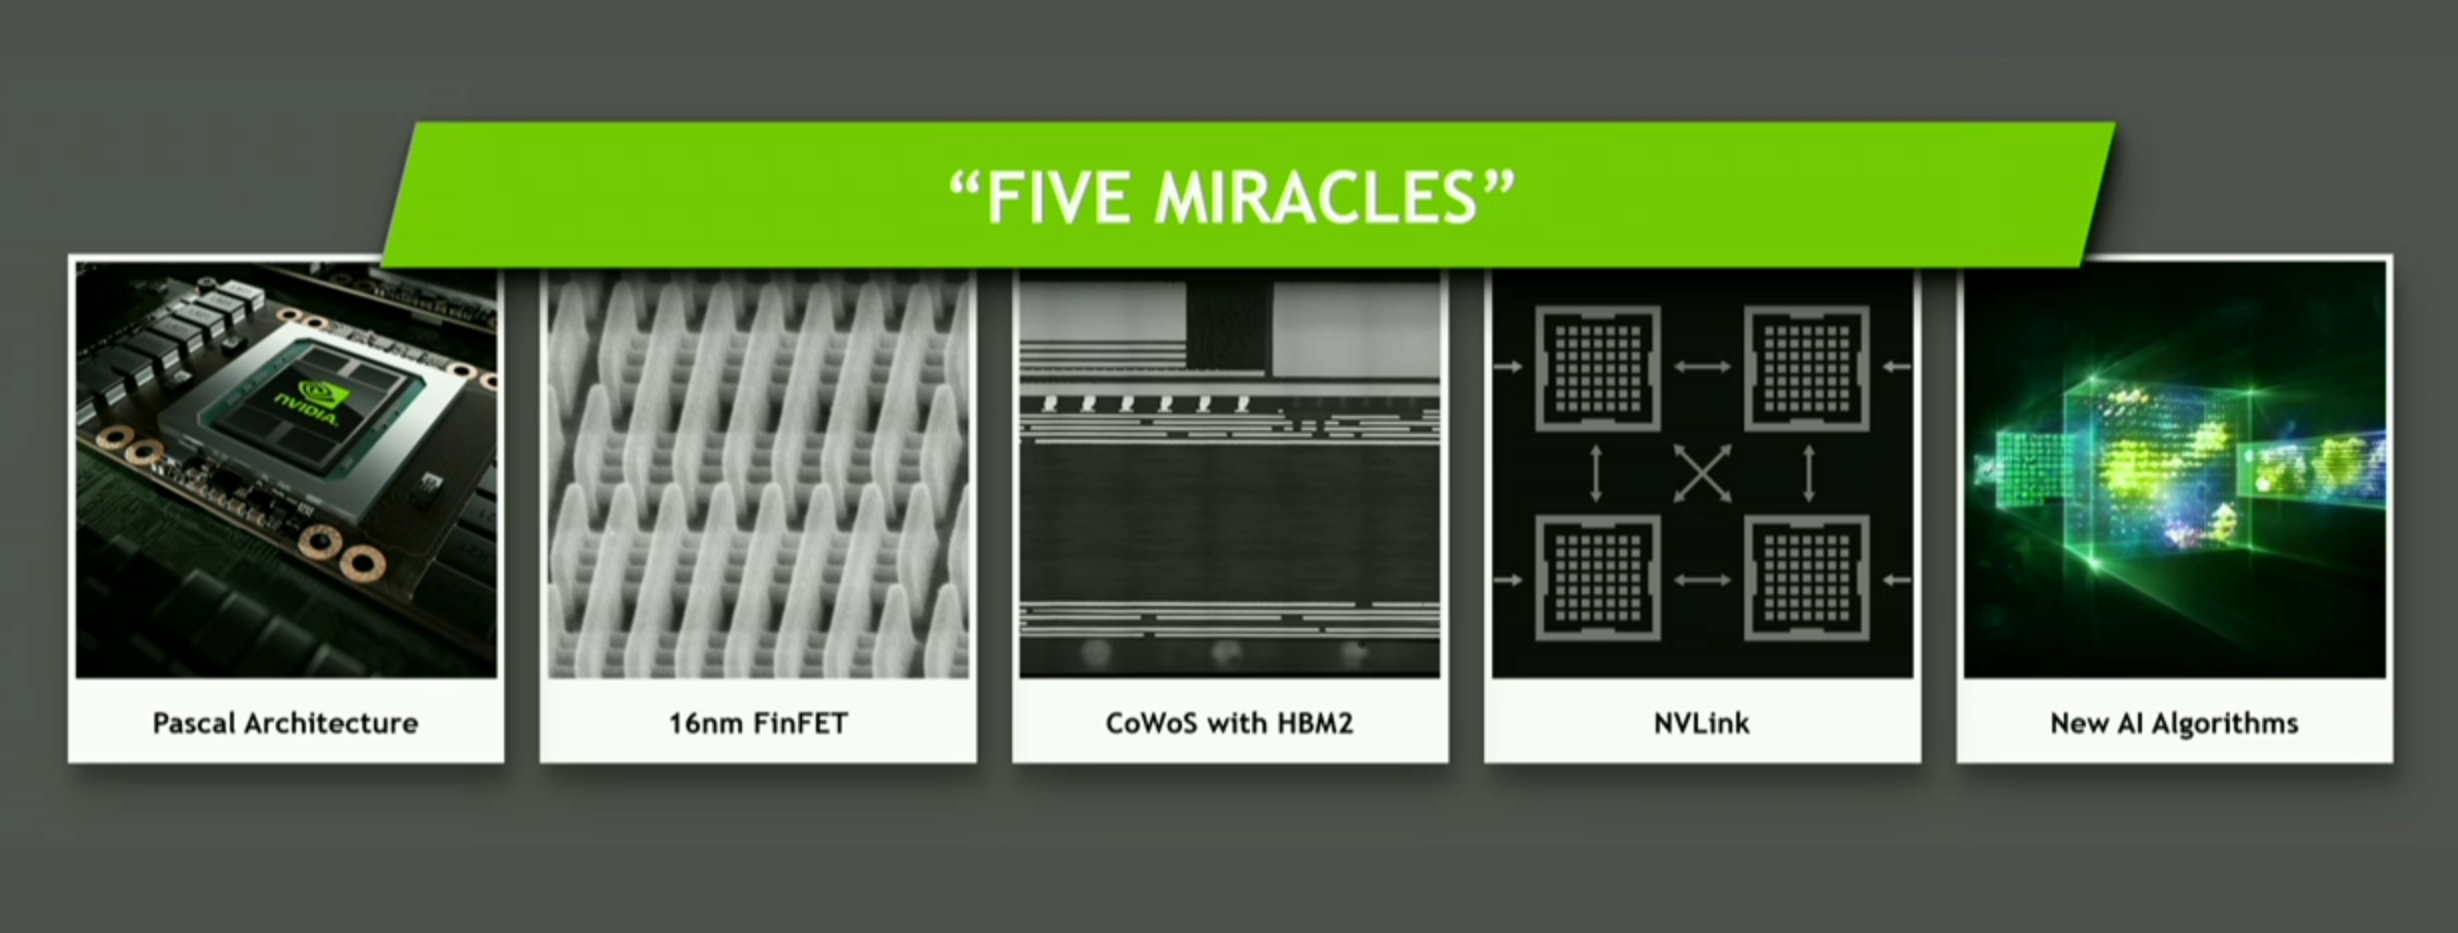 Nvidia's monstrous 16nm Pascal GPU is packed with cutting